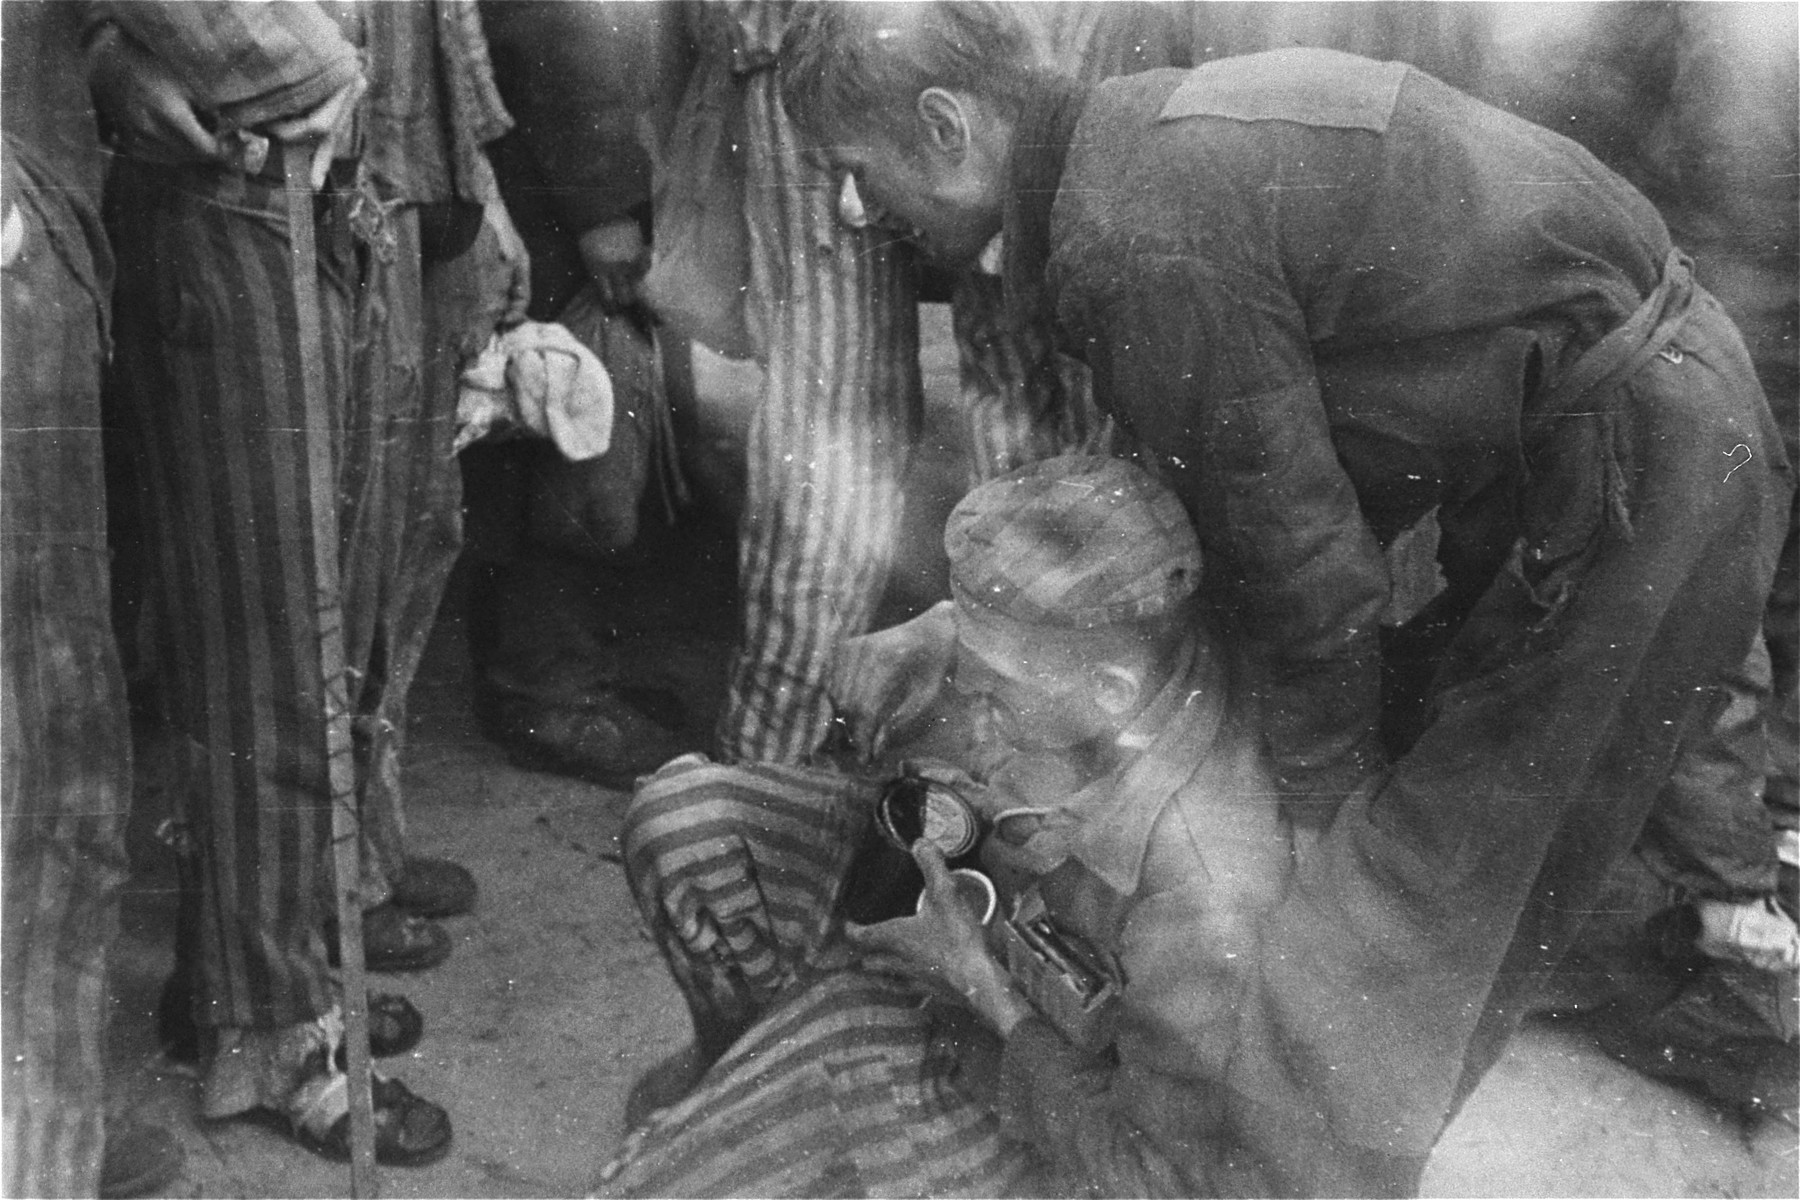 A survivor carrying rations given to him by an American soldier is evacuated from the Woebbelin concentration camp to a field hospital where he will be given medical attention.